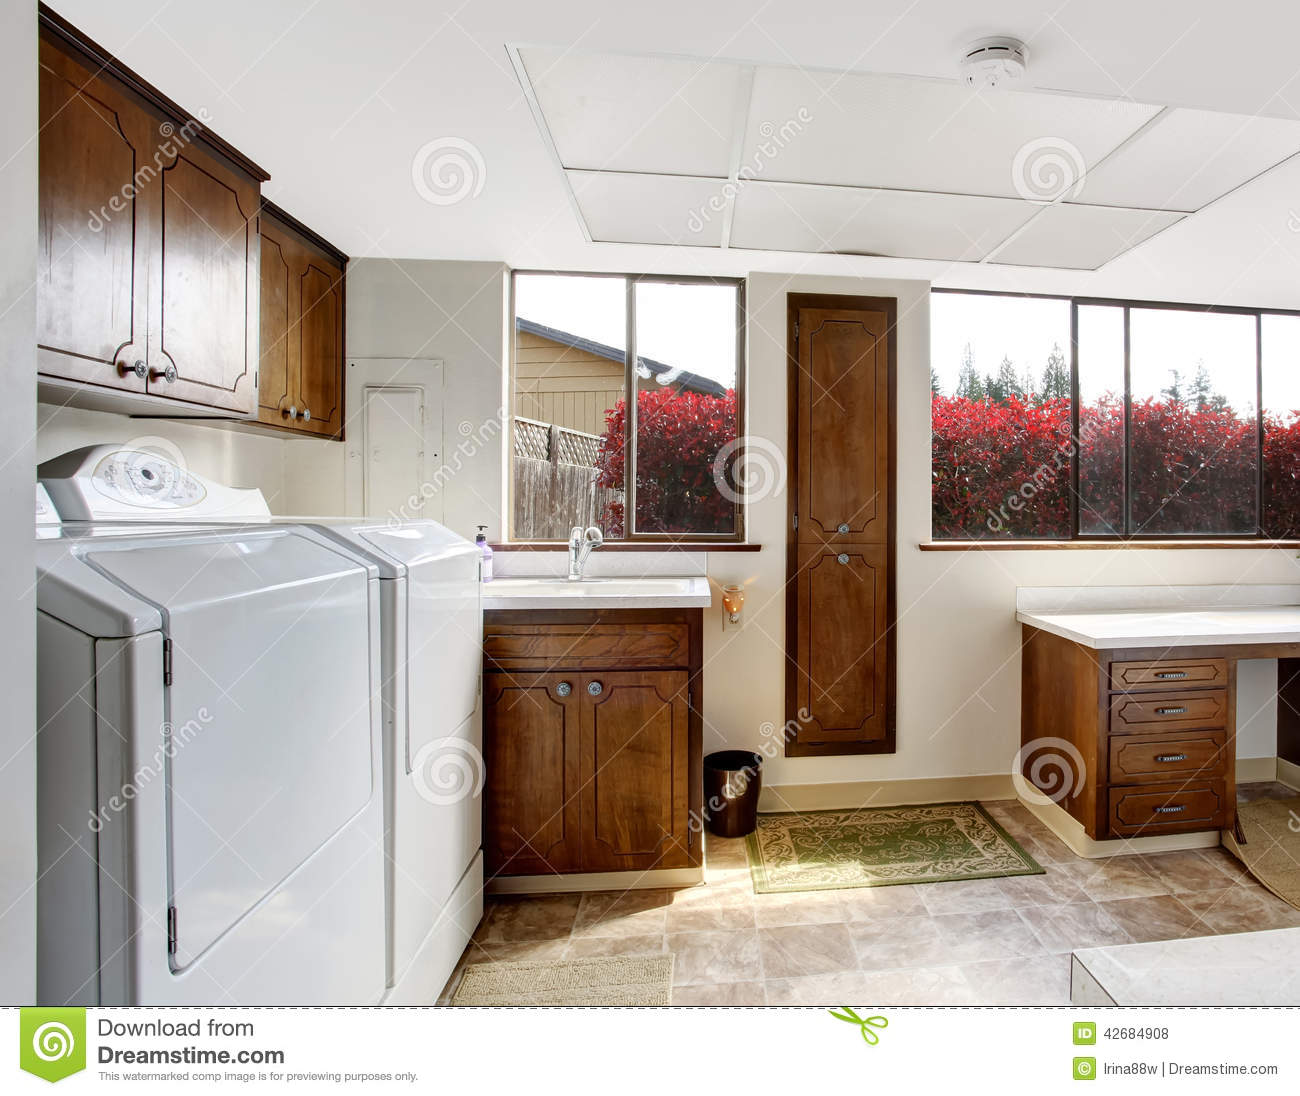 Orange Kitchen Room With White Cabinets Stock Image: Bright Laundry Room With Dark Brown Cabinets Stock Photo